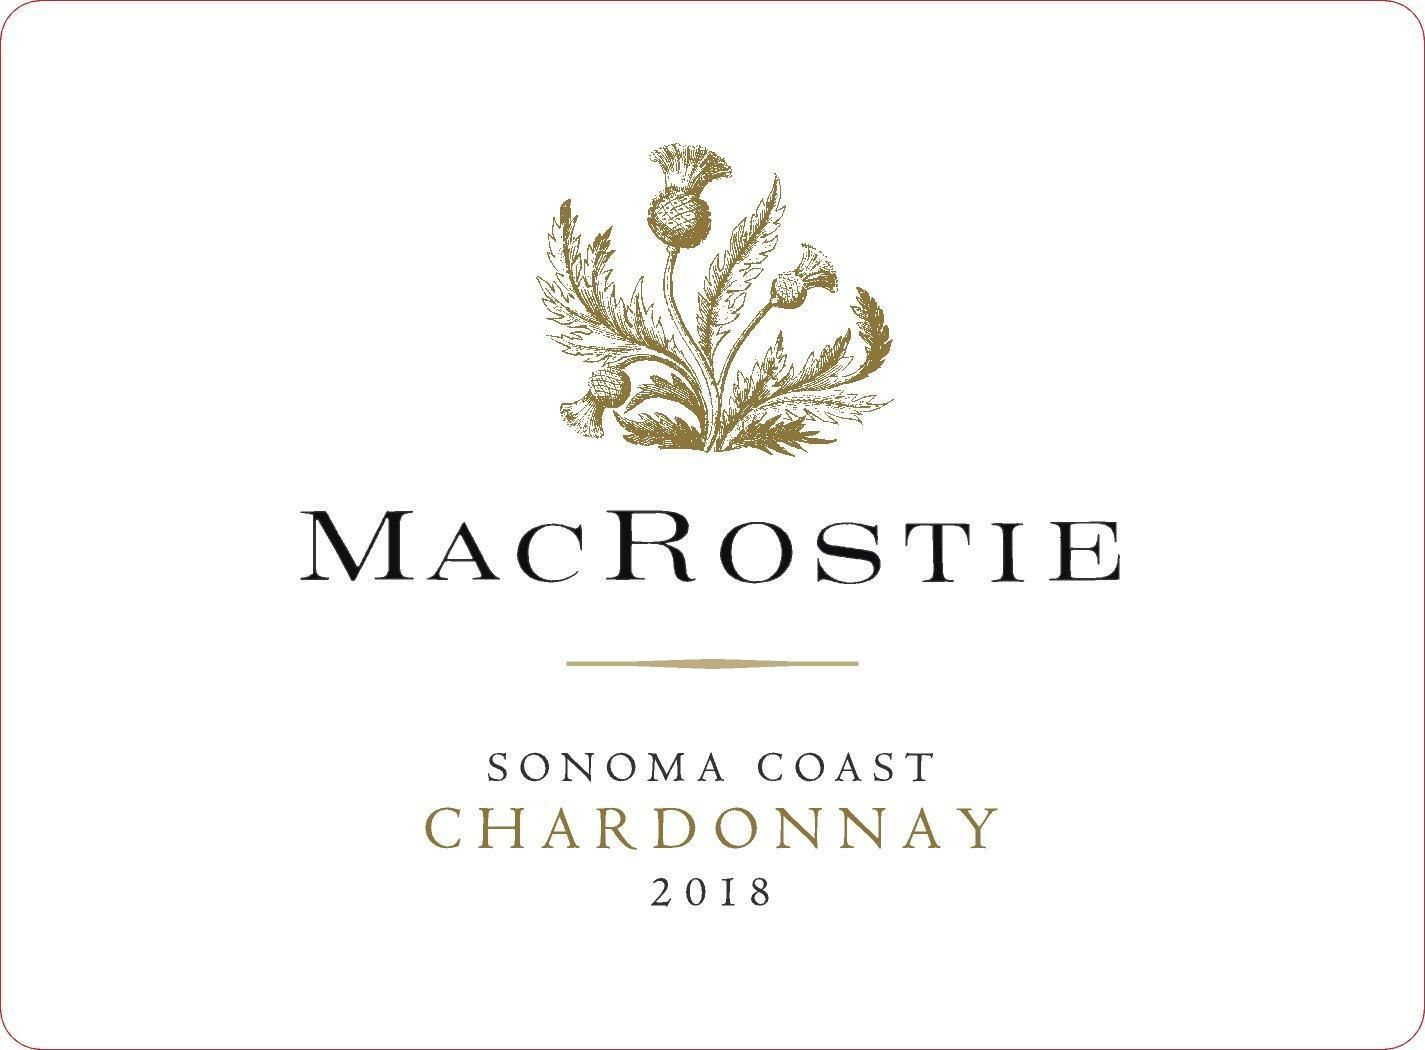 Wine Label - MacRostie 2018 Chardonnay, Sonoma Coast (HALF BOTTLE) THUMBNAIL